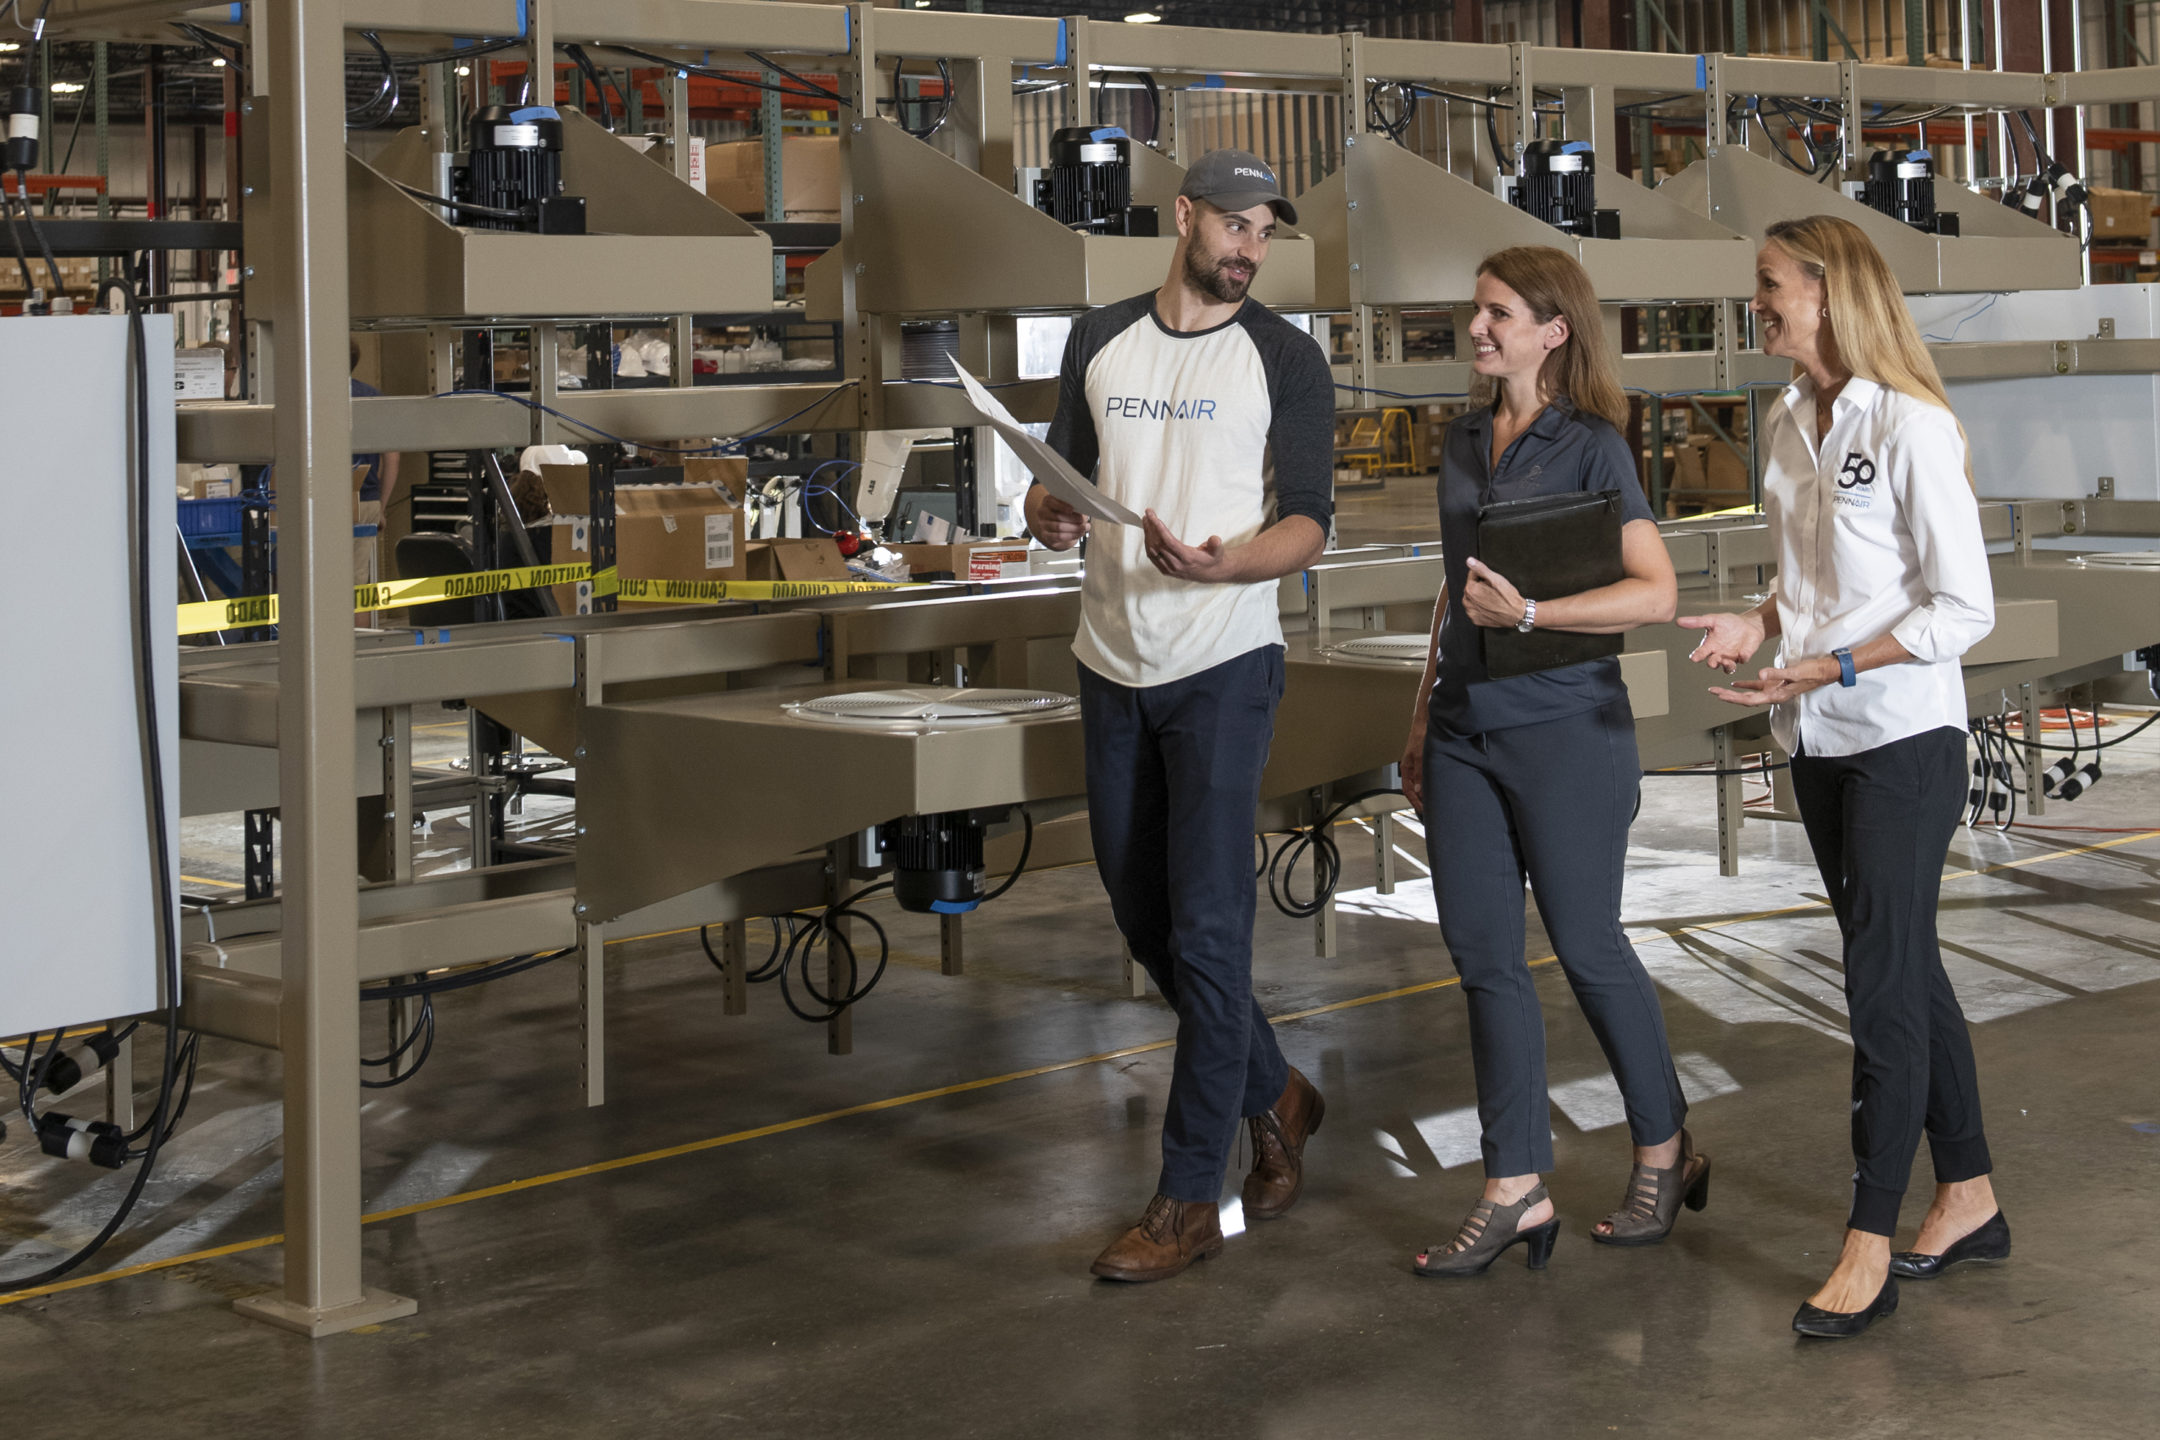 three people walking and discussing plans while in a warehouse/factory